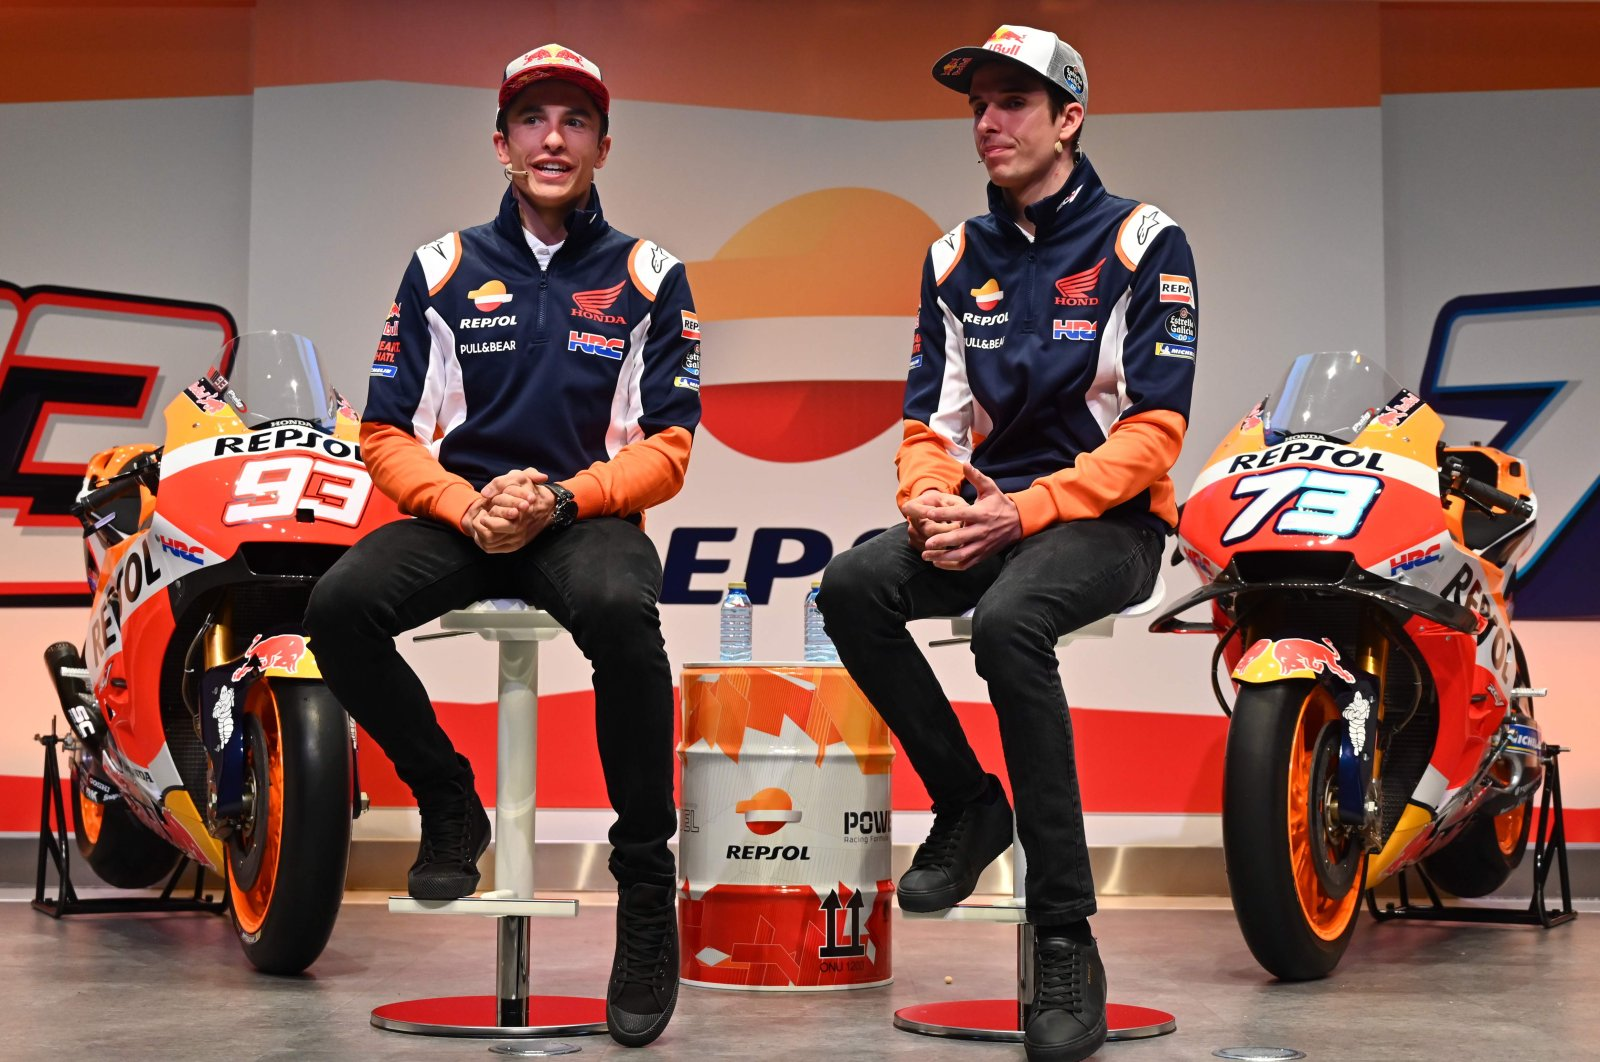 Repsol Honda Team's Spanish MotoGP driver Marc Marquez (L) and his brother and teammate Alex Marquez attend the presentation of the new Repsol Honda team in Madrid, Spain, Feb. 27, 2020. (AFP Photo)